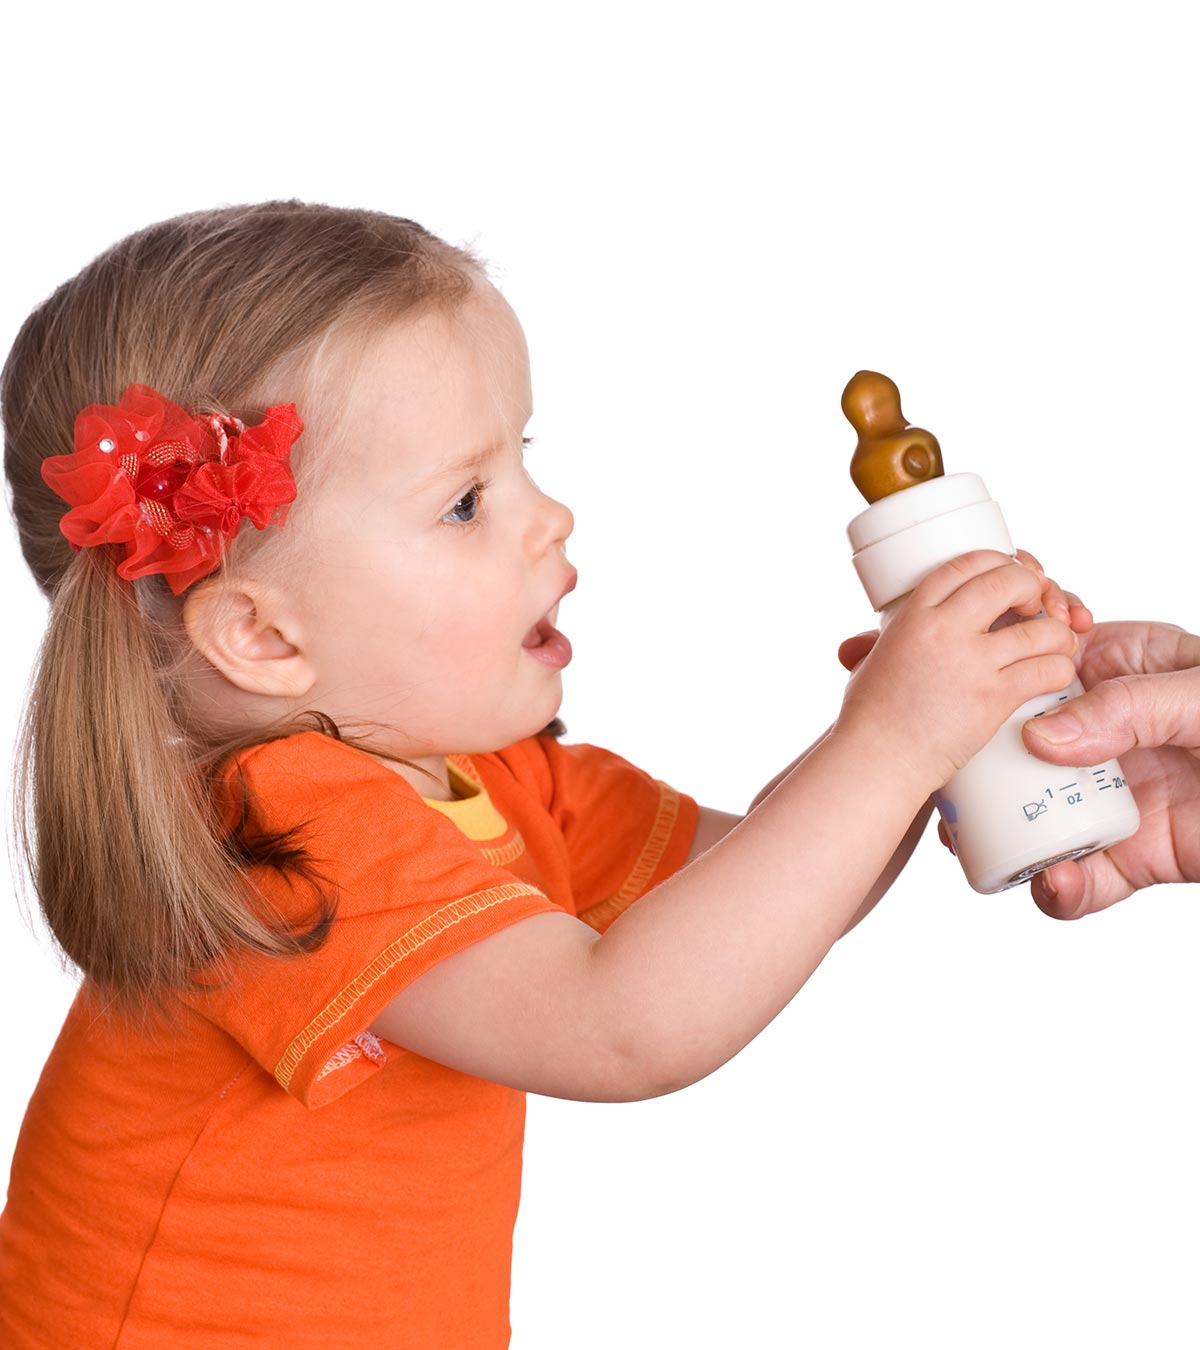 When To Stop Bottle Feeding The Babies And How To Do It?